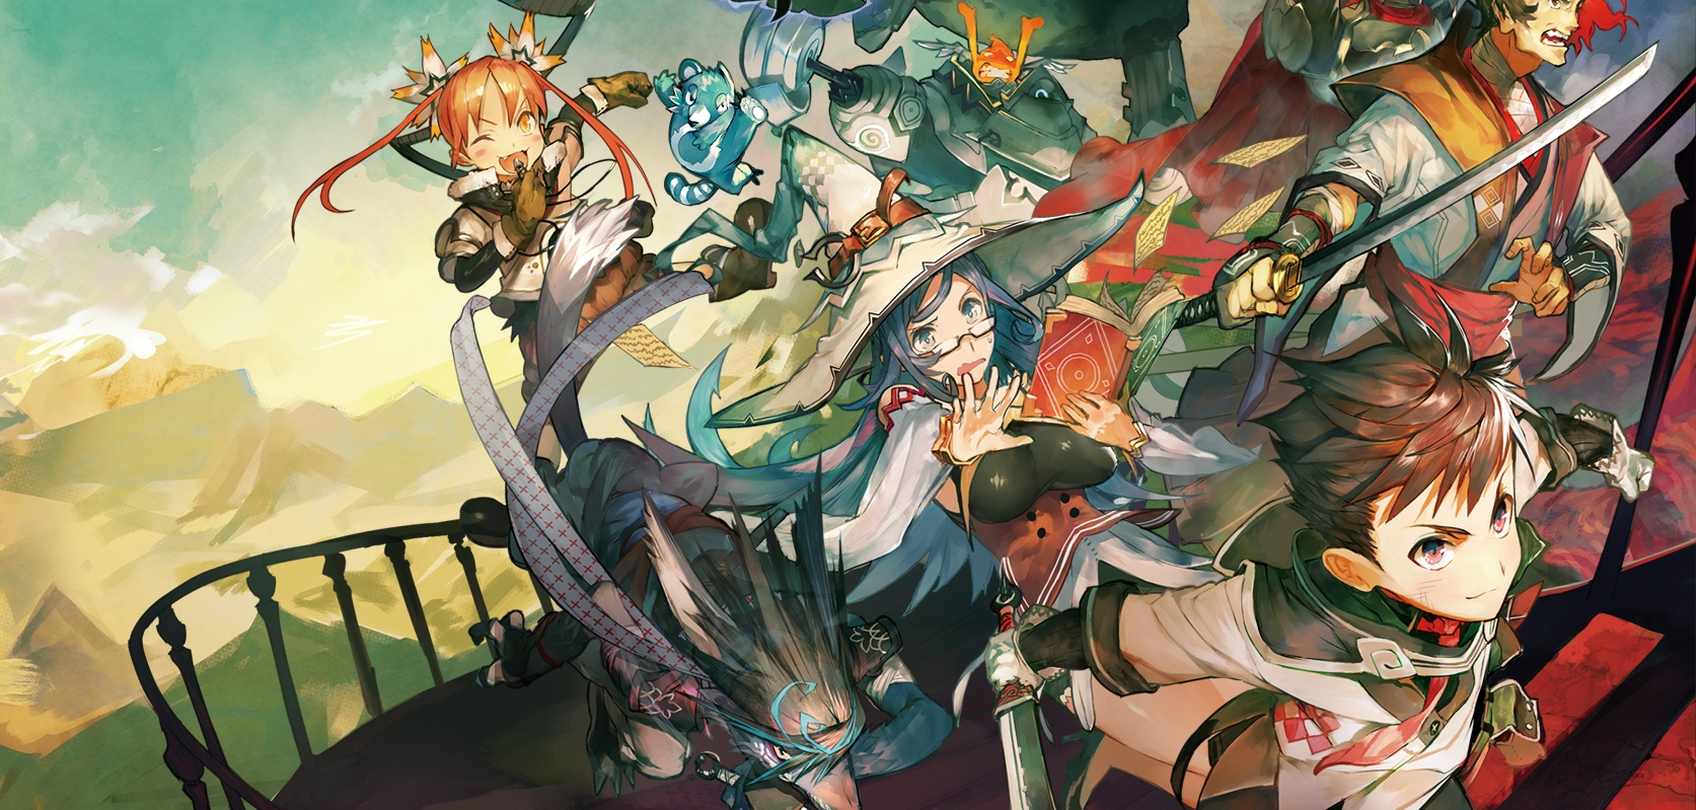 RPG Maker MV Player Releases Six New Sample Games By Contest Winners